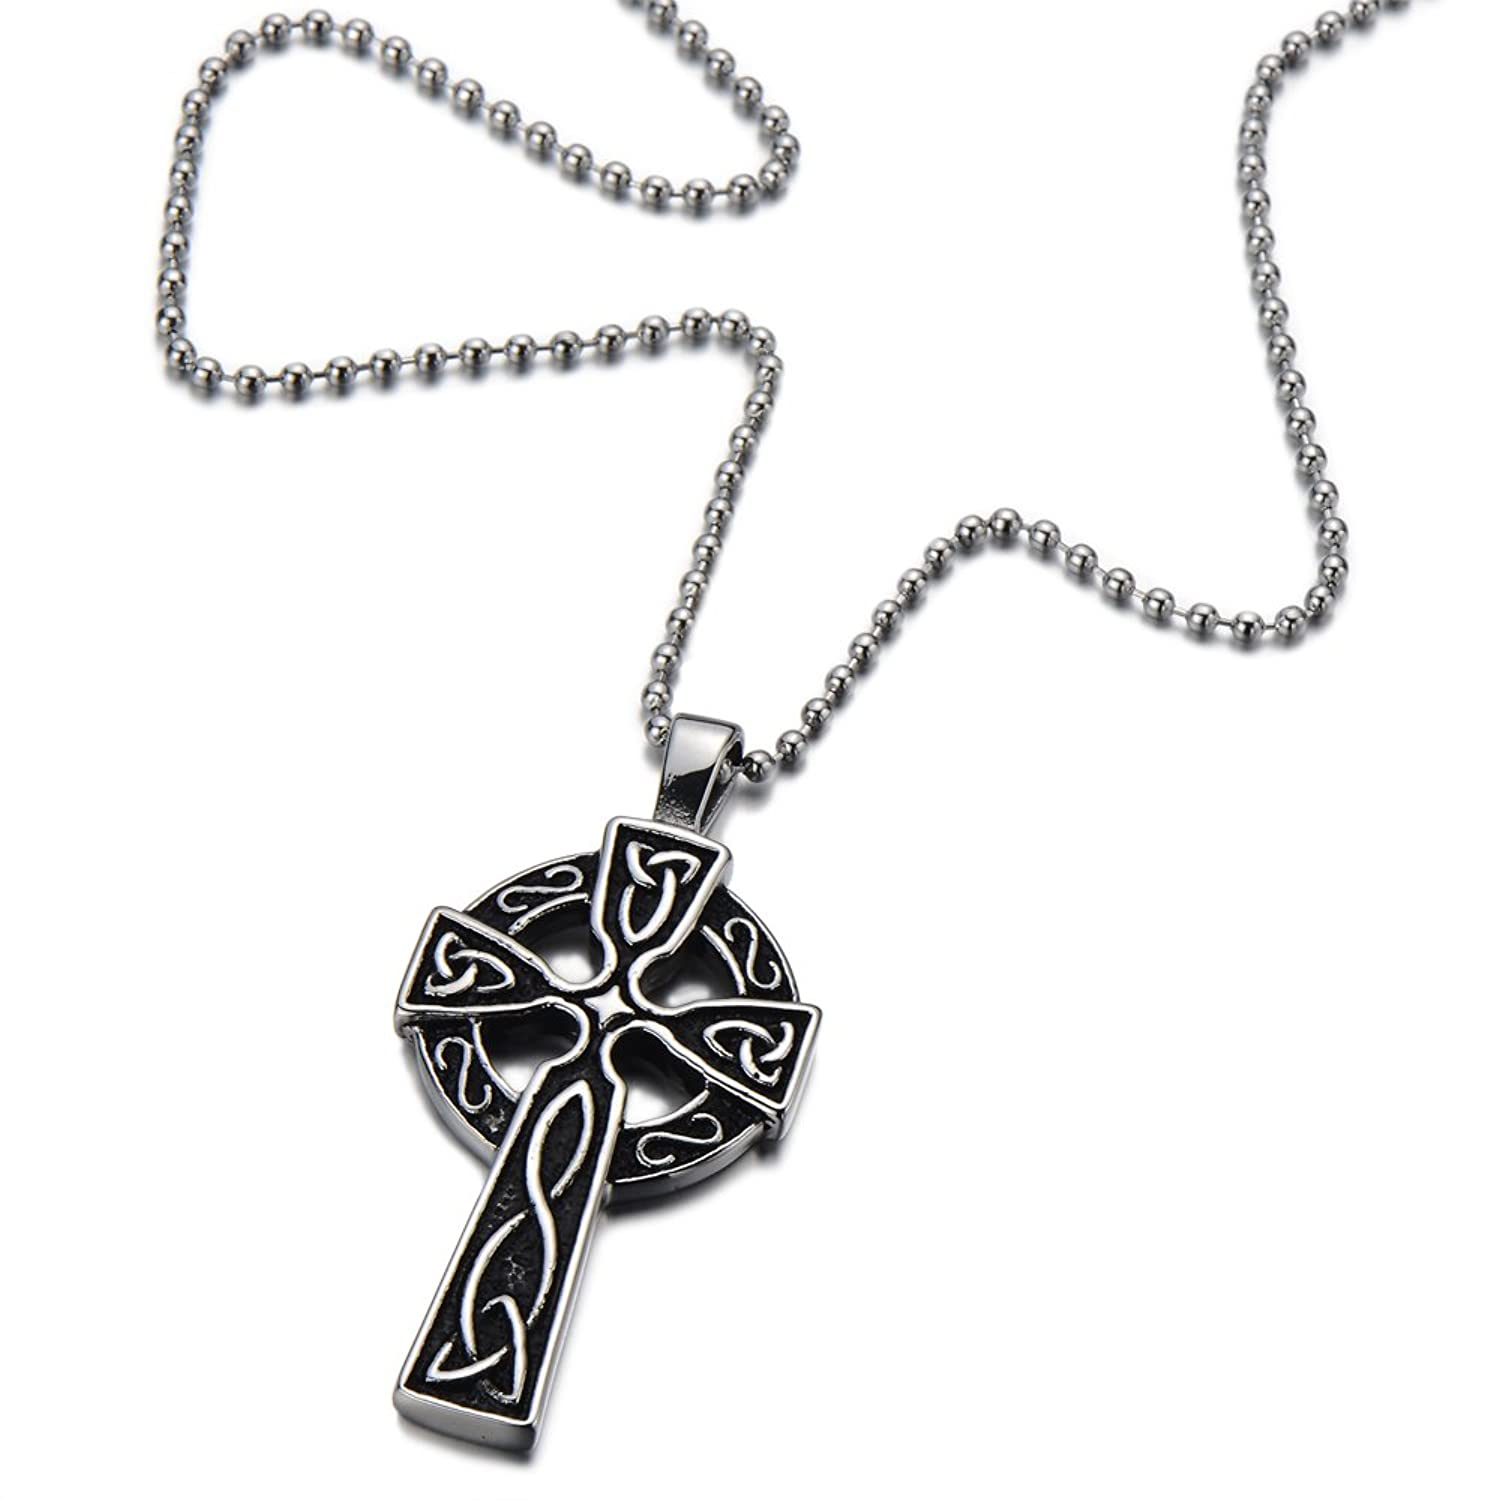 silver pendant product cross celtic claddagh ireland mens design large necklace